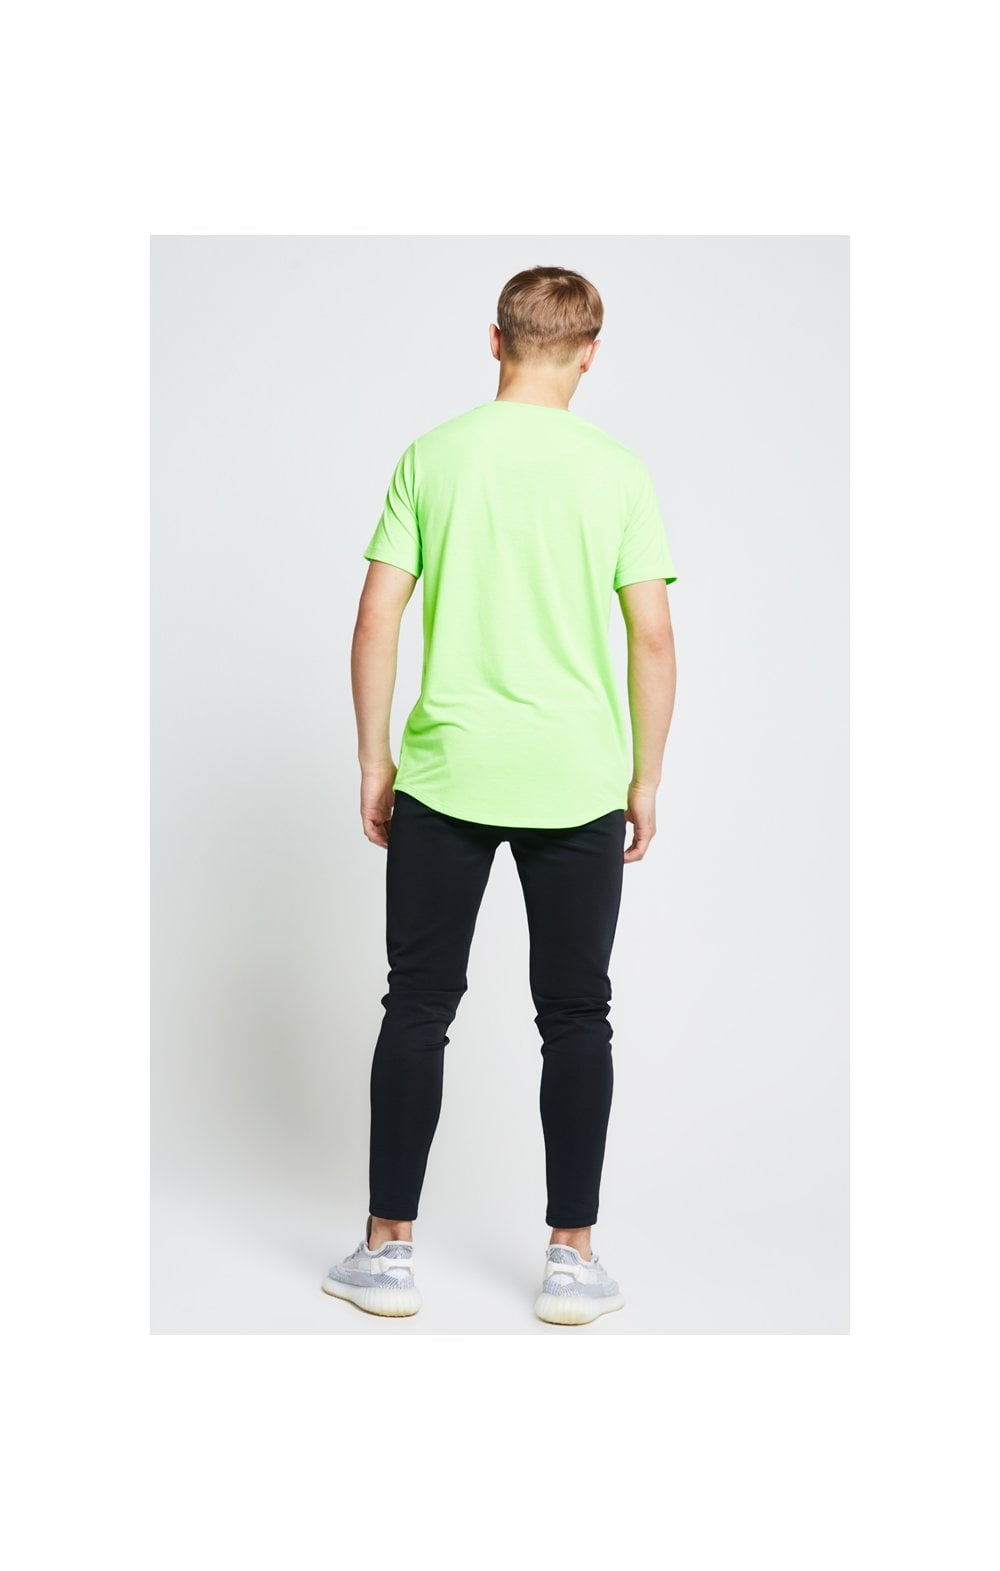 Illusive London S/S Taped Tee – Neon Green (5)